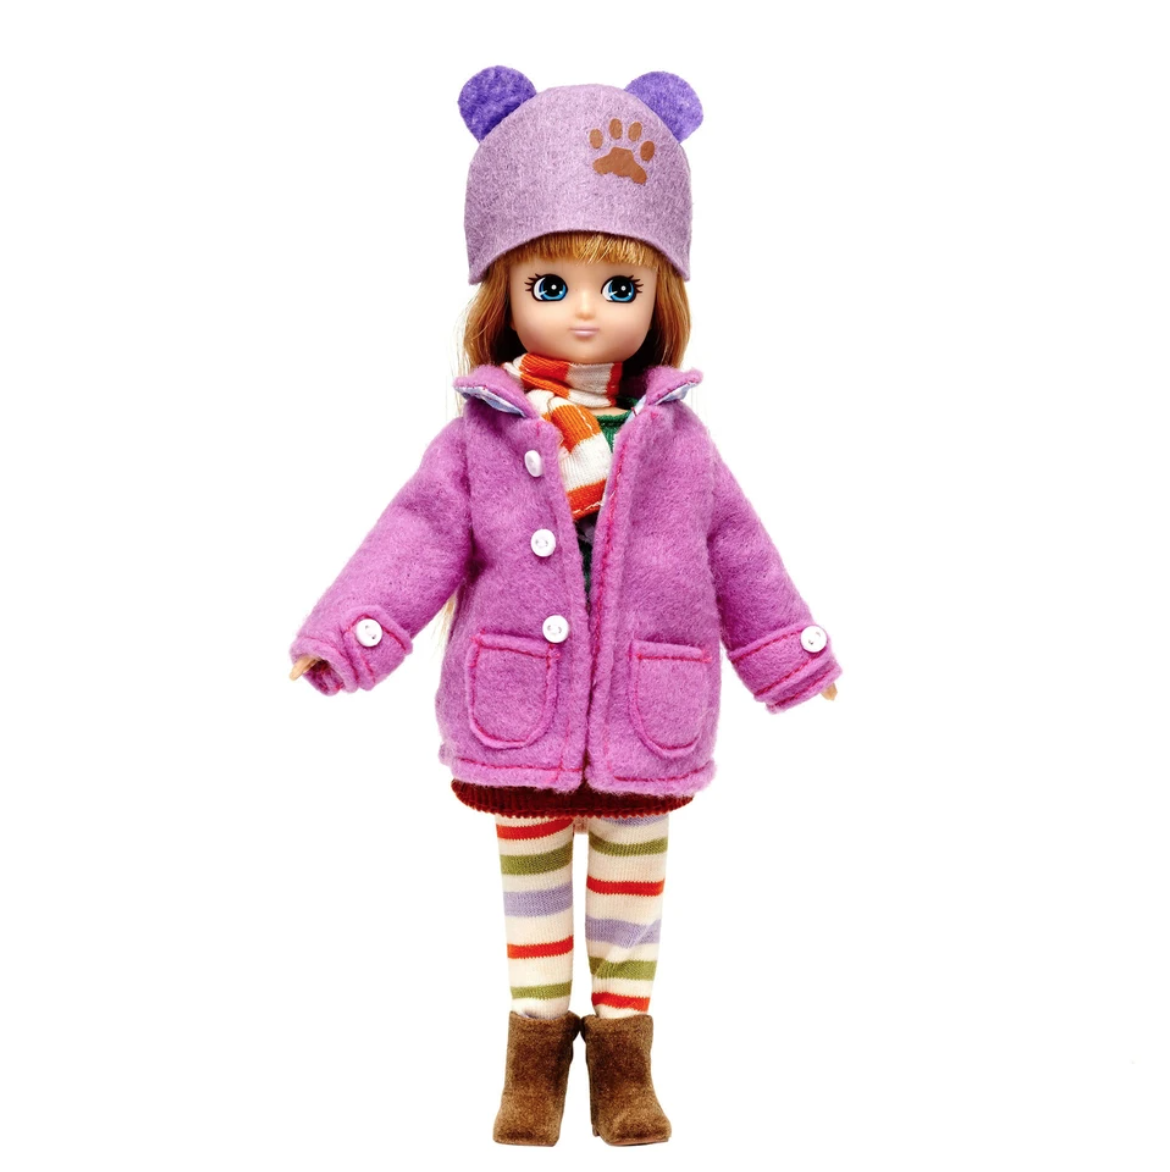 Autumn Lottie Doll with cosy outfit including pink duffel coa, scarf and boots.